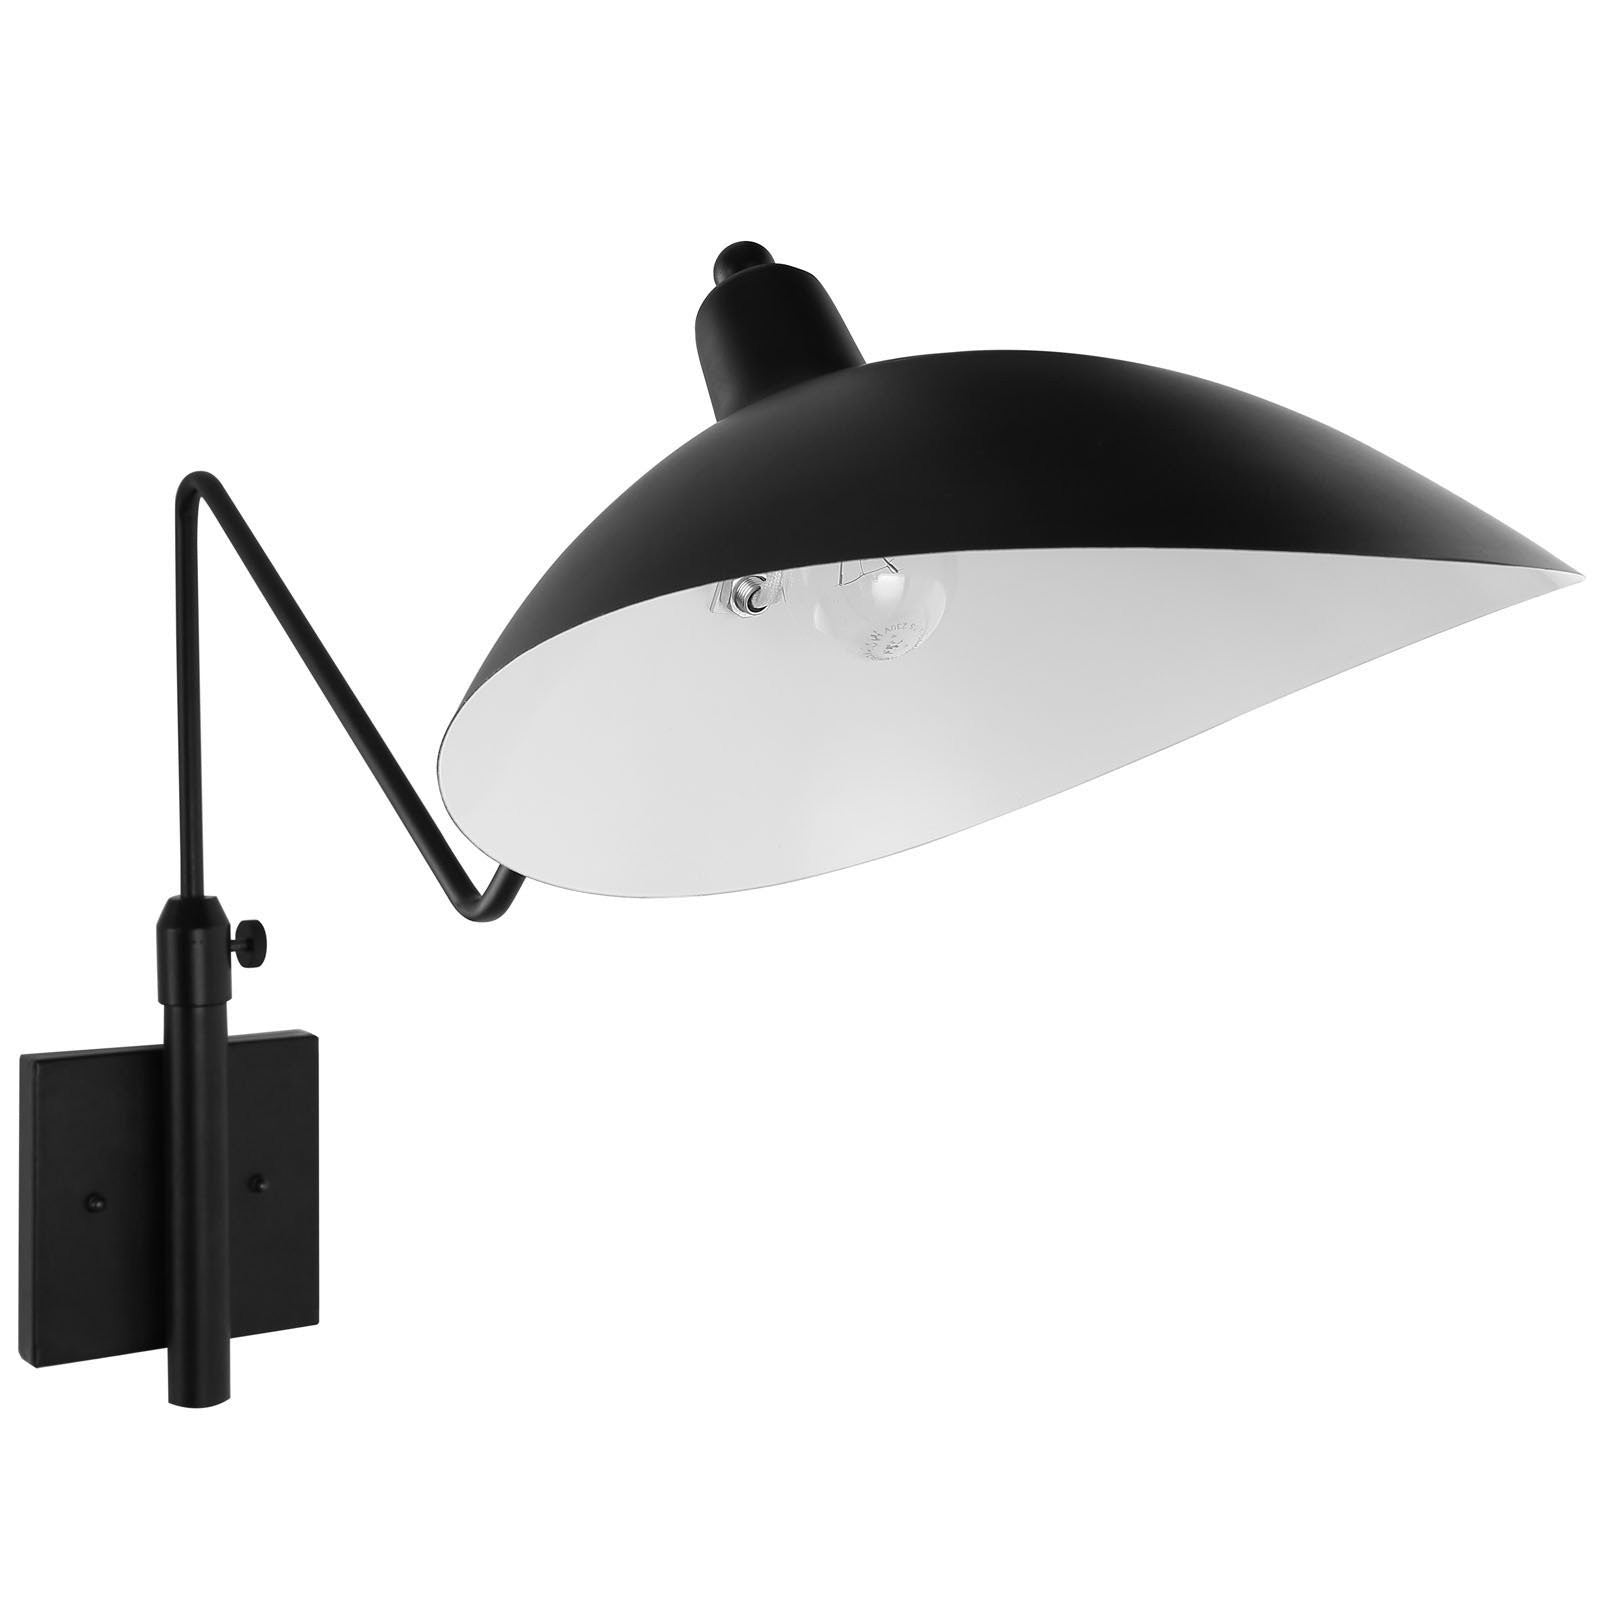 Serge Mouille Style Wall Lamp/Sconce - EMFURN